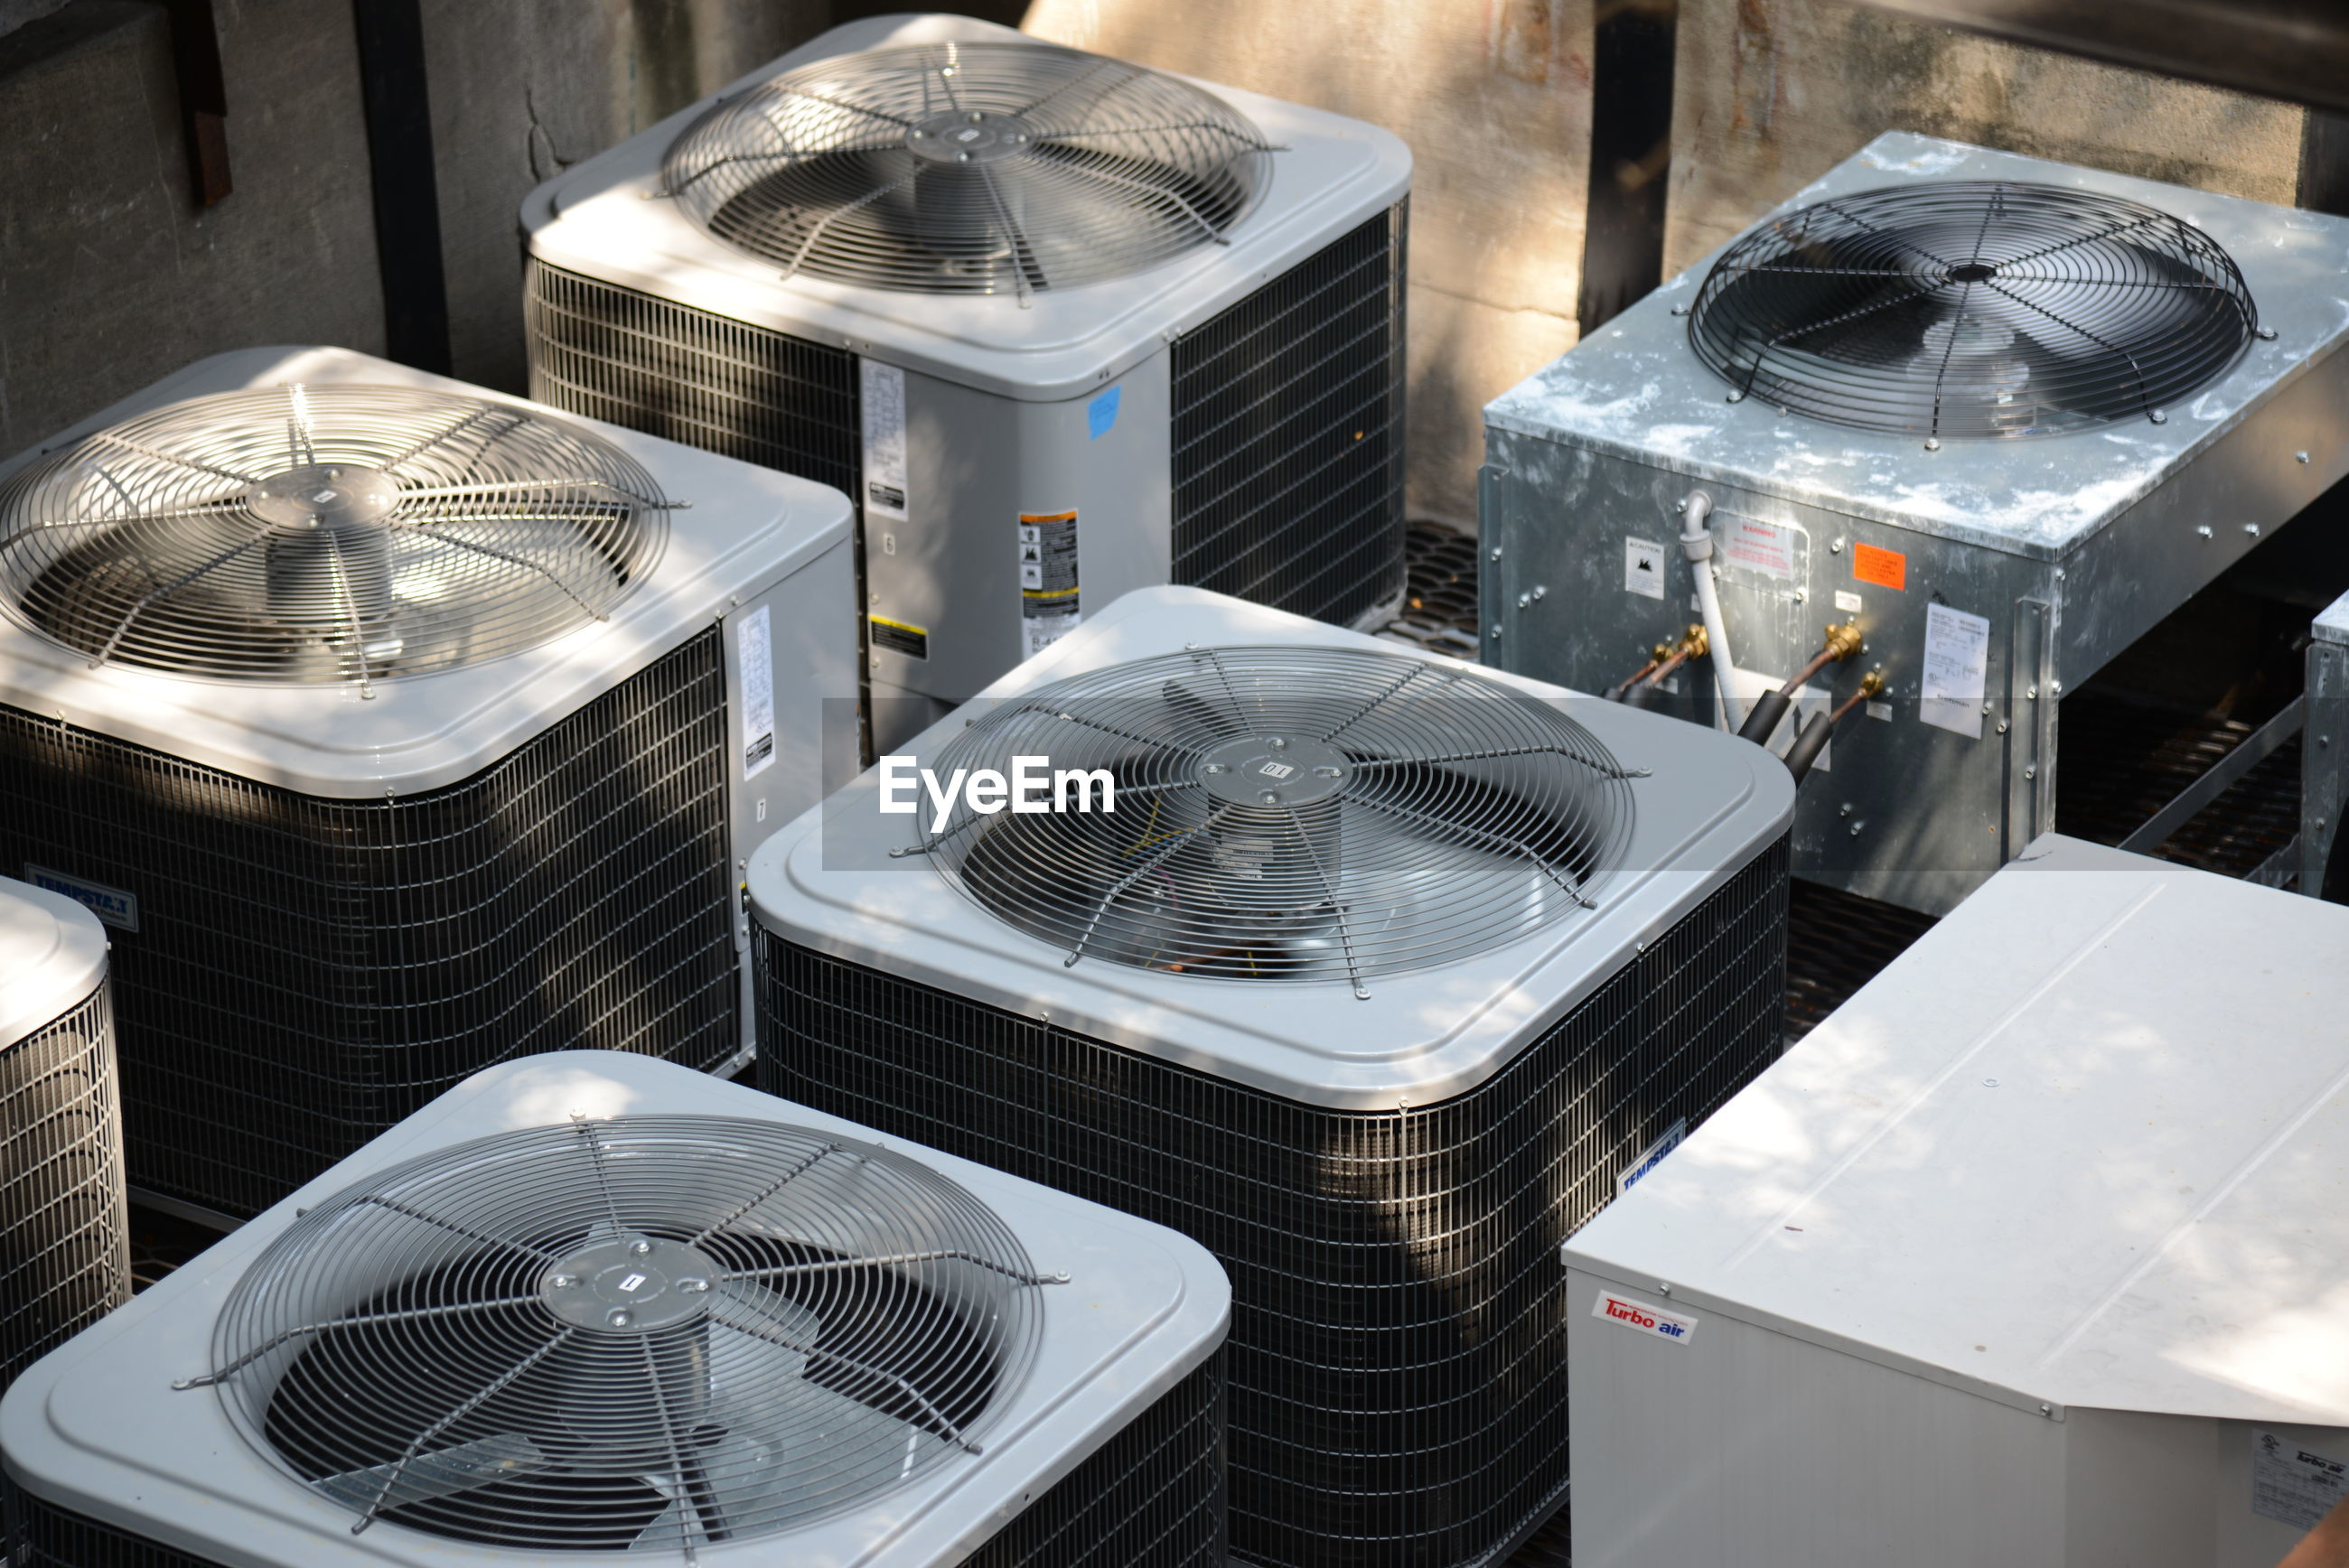 HIGH ANGLE VIEW OF ELECTRIC FAN ON TABLE